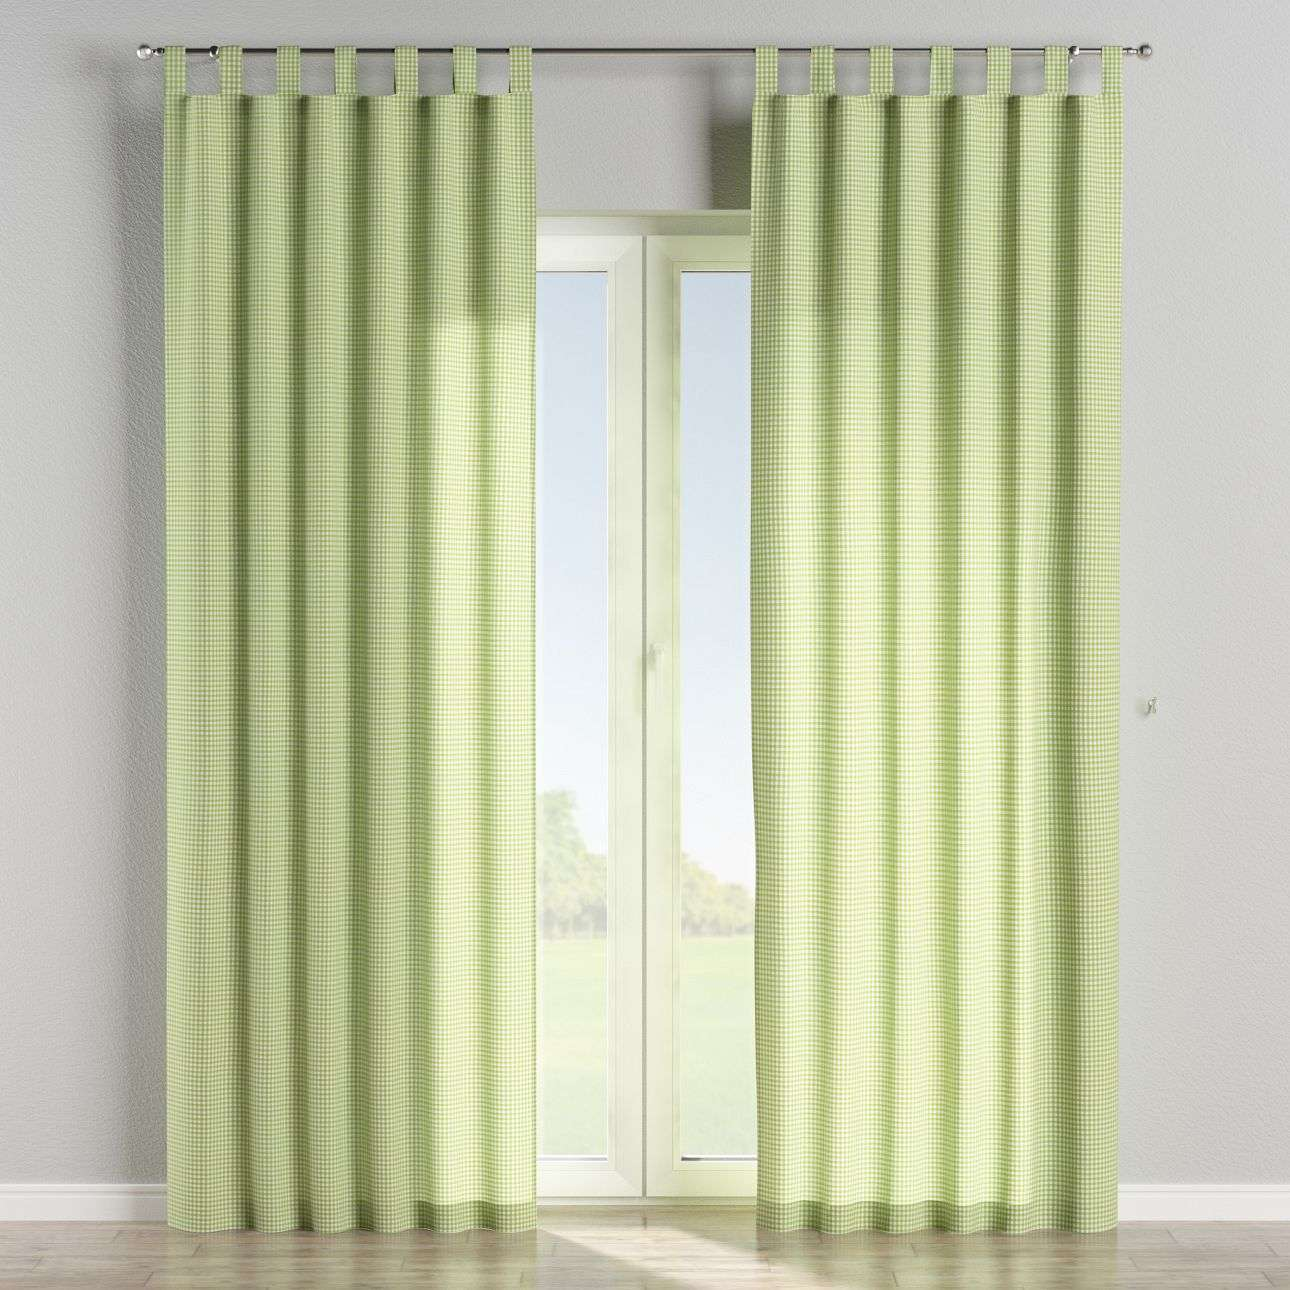 Tab top curtains 130 x 260 cm (51 x 102 inch) in collection Quadro, fabric: 136-33